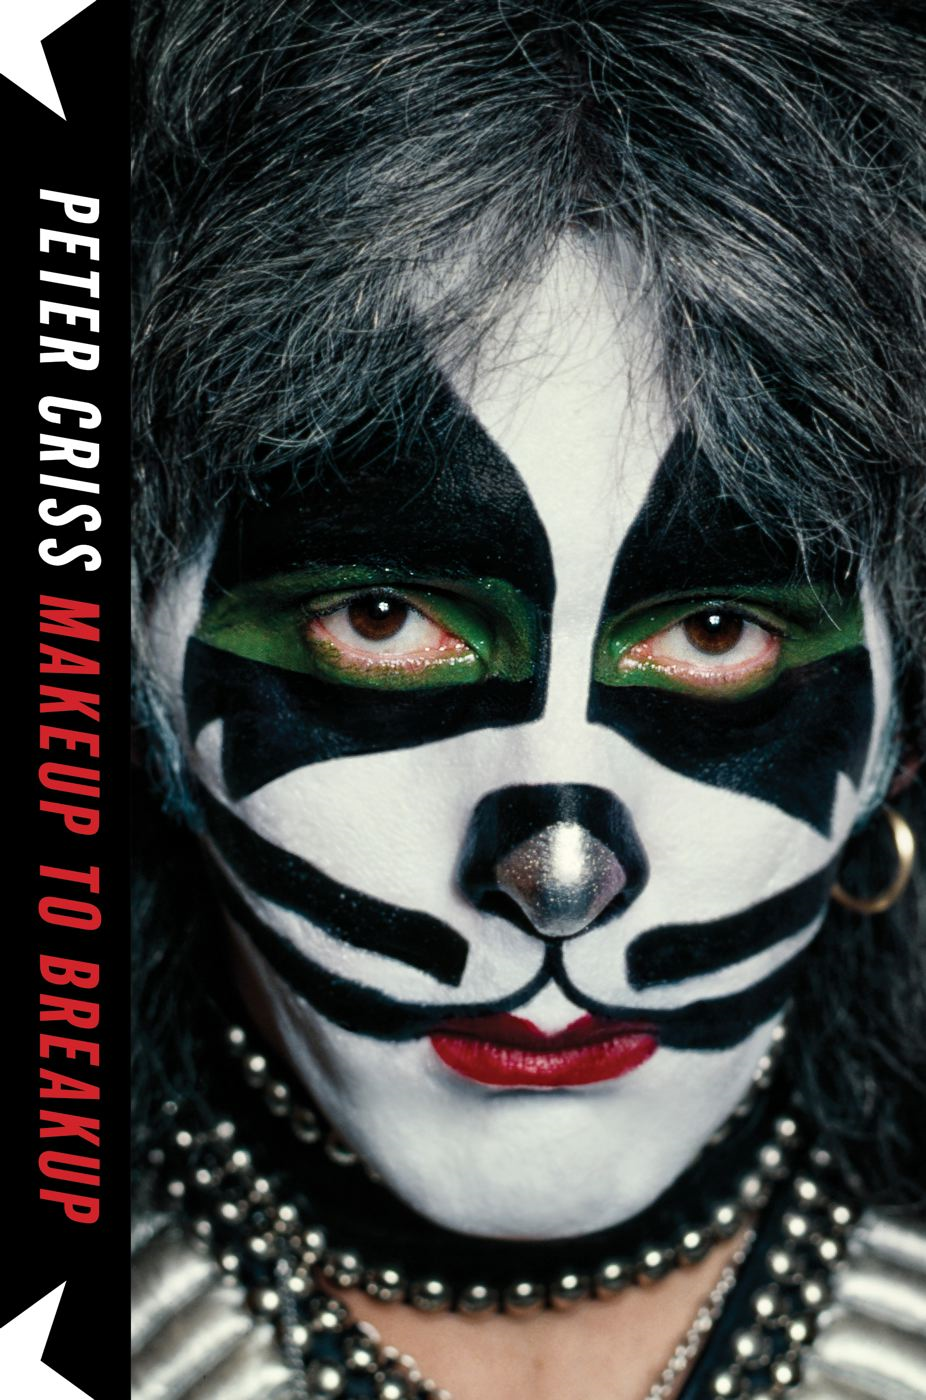 Makeup to Breakup By: Peter Criss